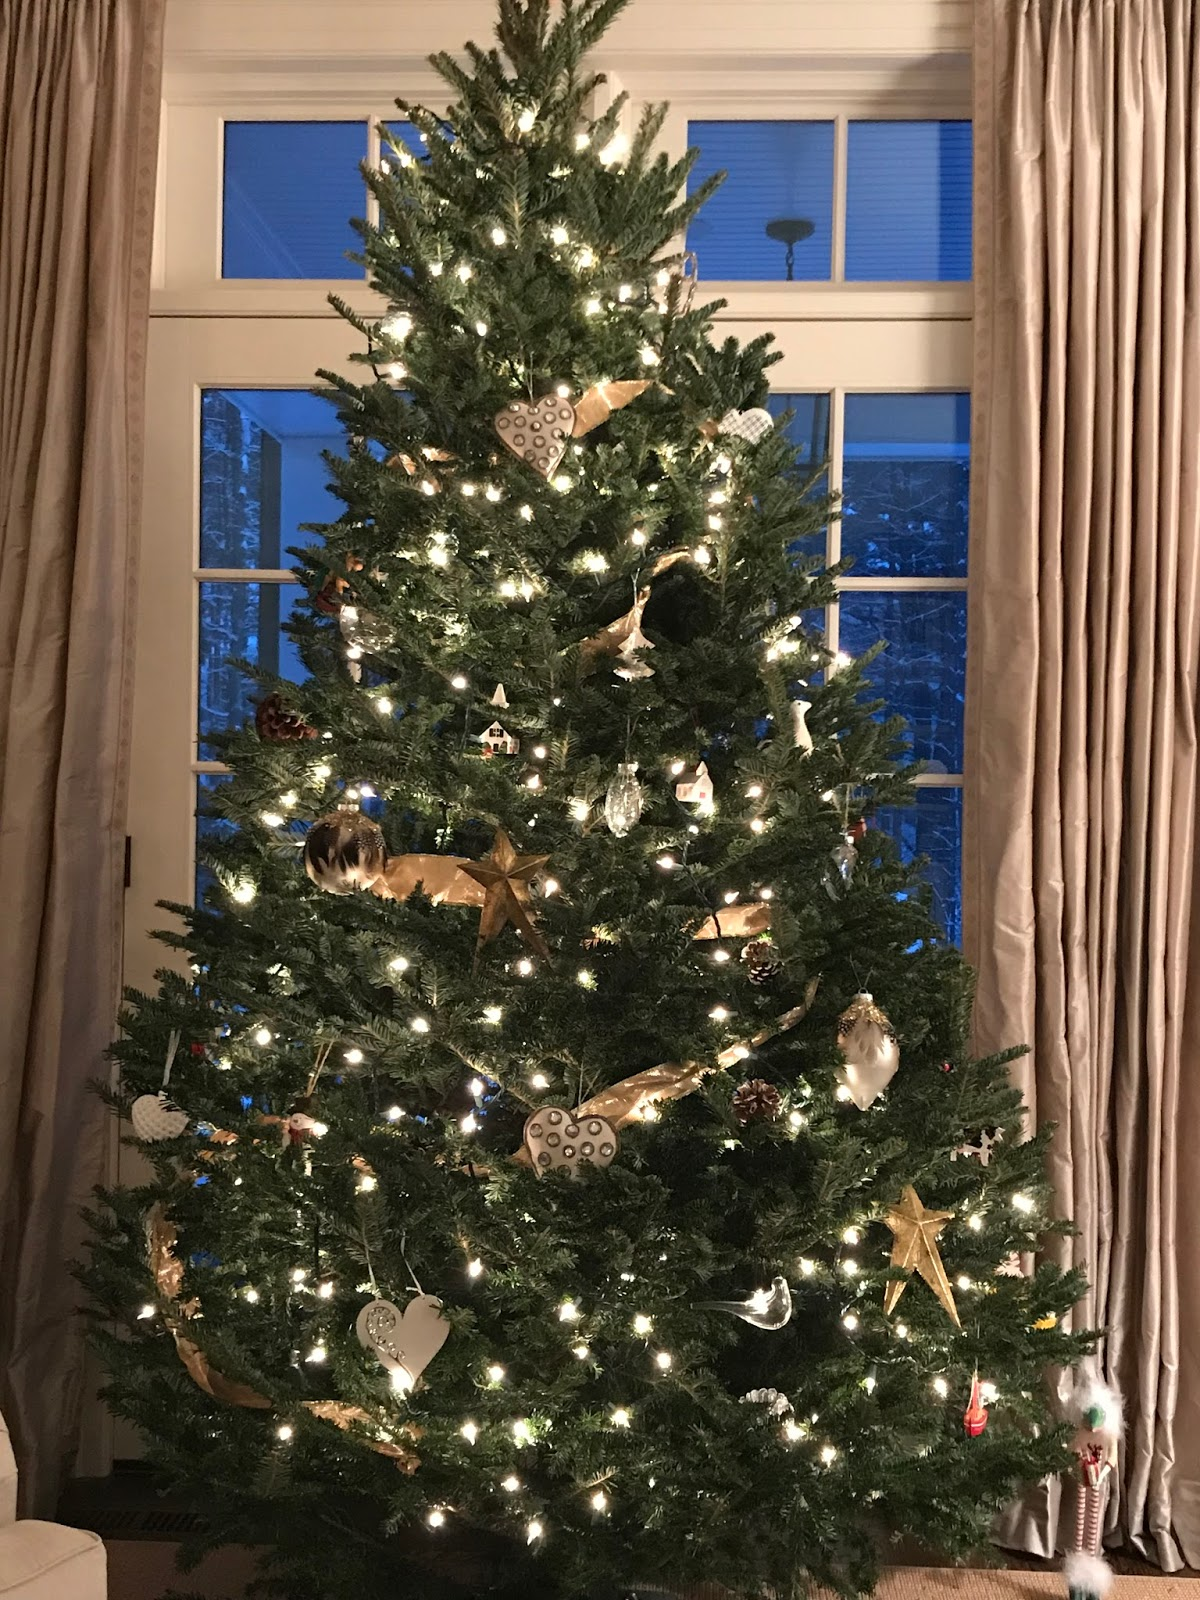 Finding Babcie: A JEWISH CHRISTMAS TREE